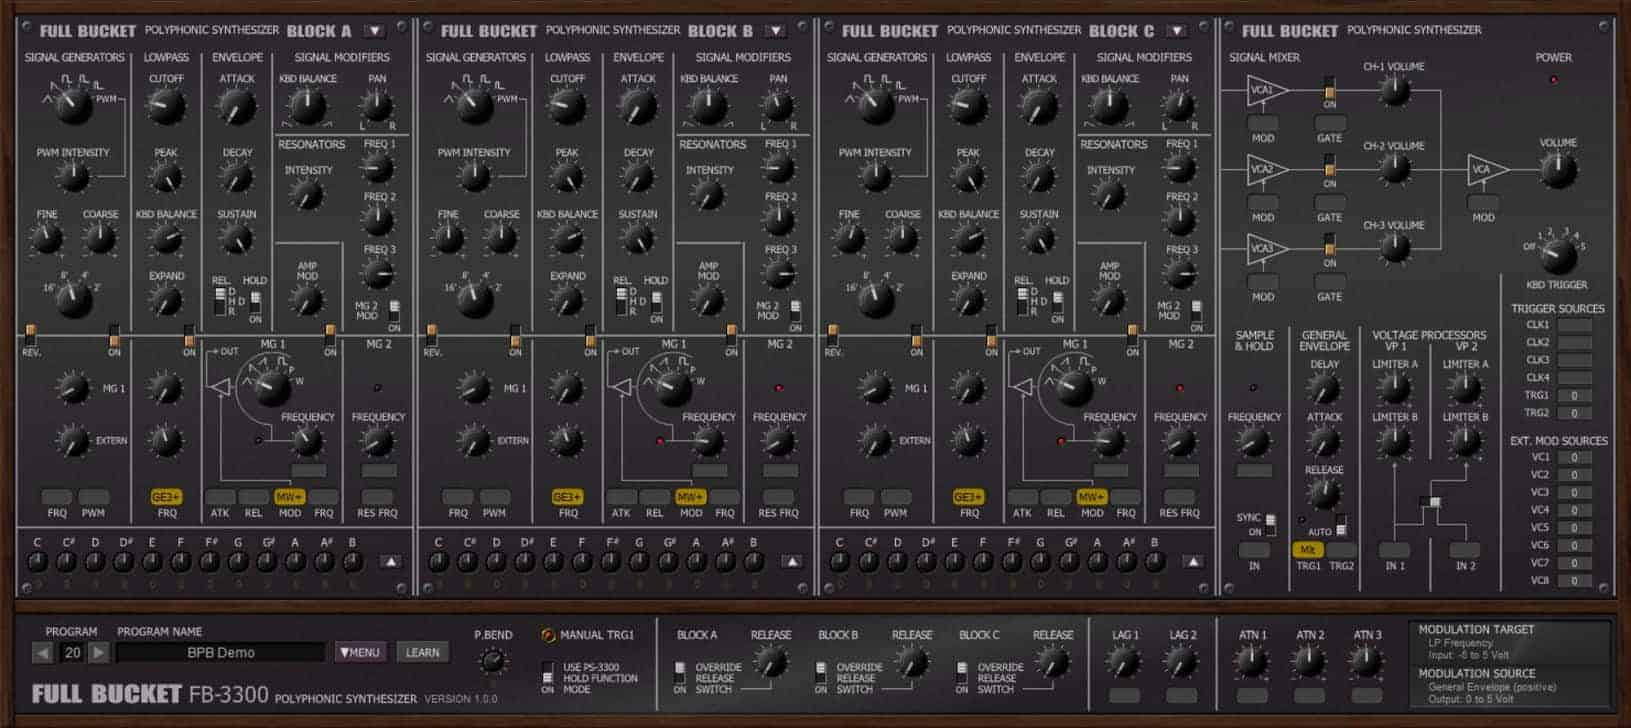 Free KORG PS-3300 Emulation VST/AU Plugin Released By FBM - Bedroom